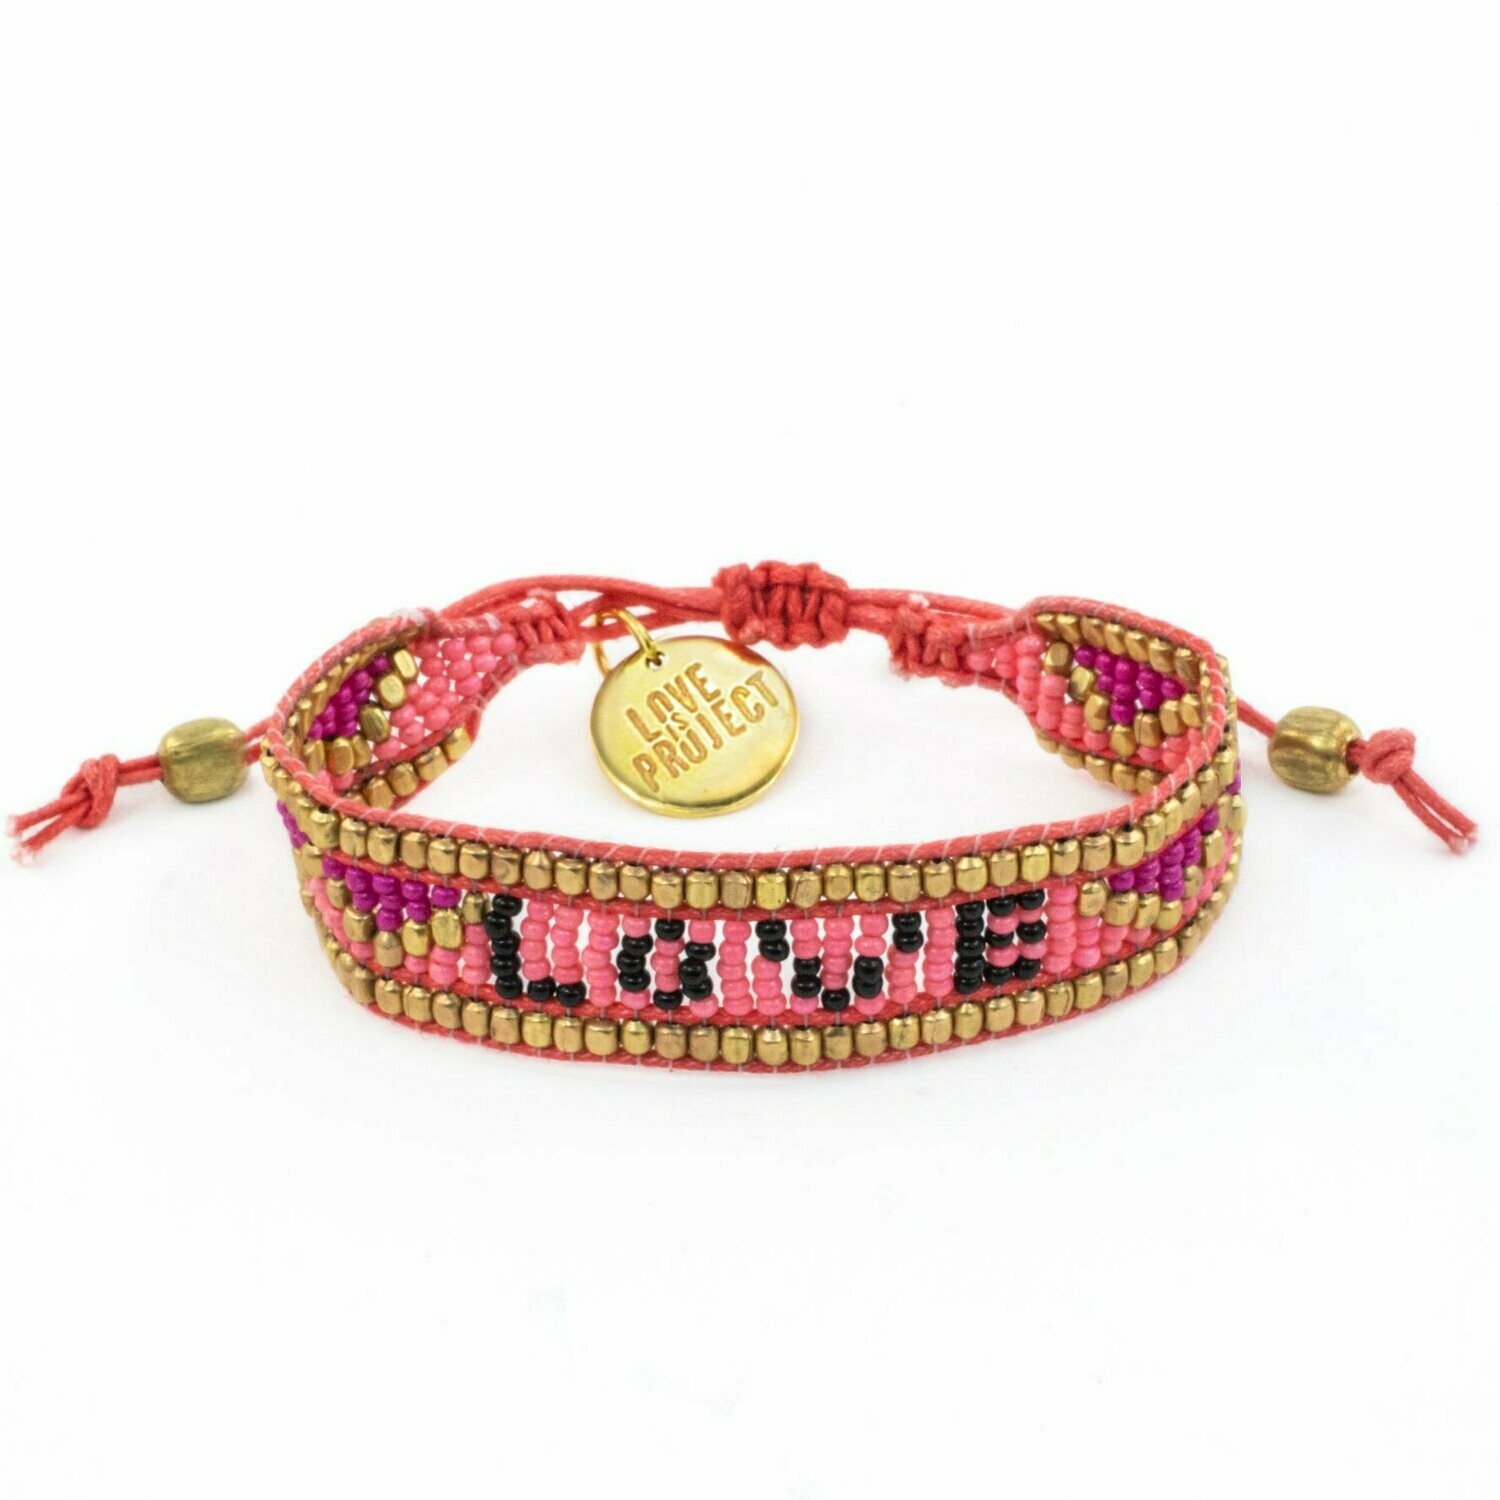 Love is Project Taj Love Bracelet - Pink/Black